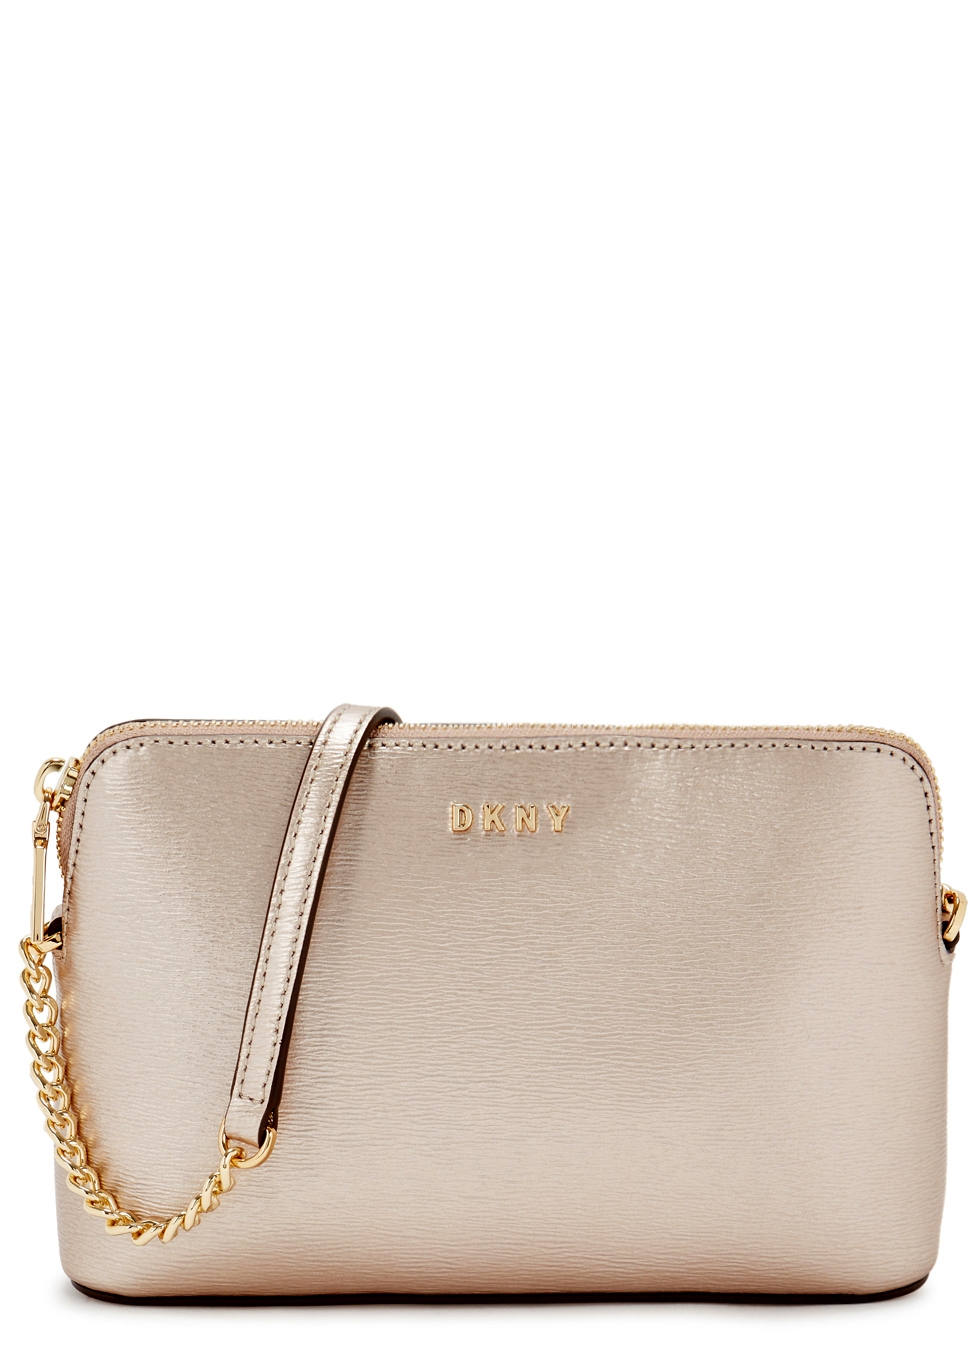 BRYANT PALE ROSE GOLD LEATHER CROSS-BODY BAG